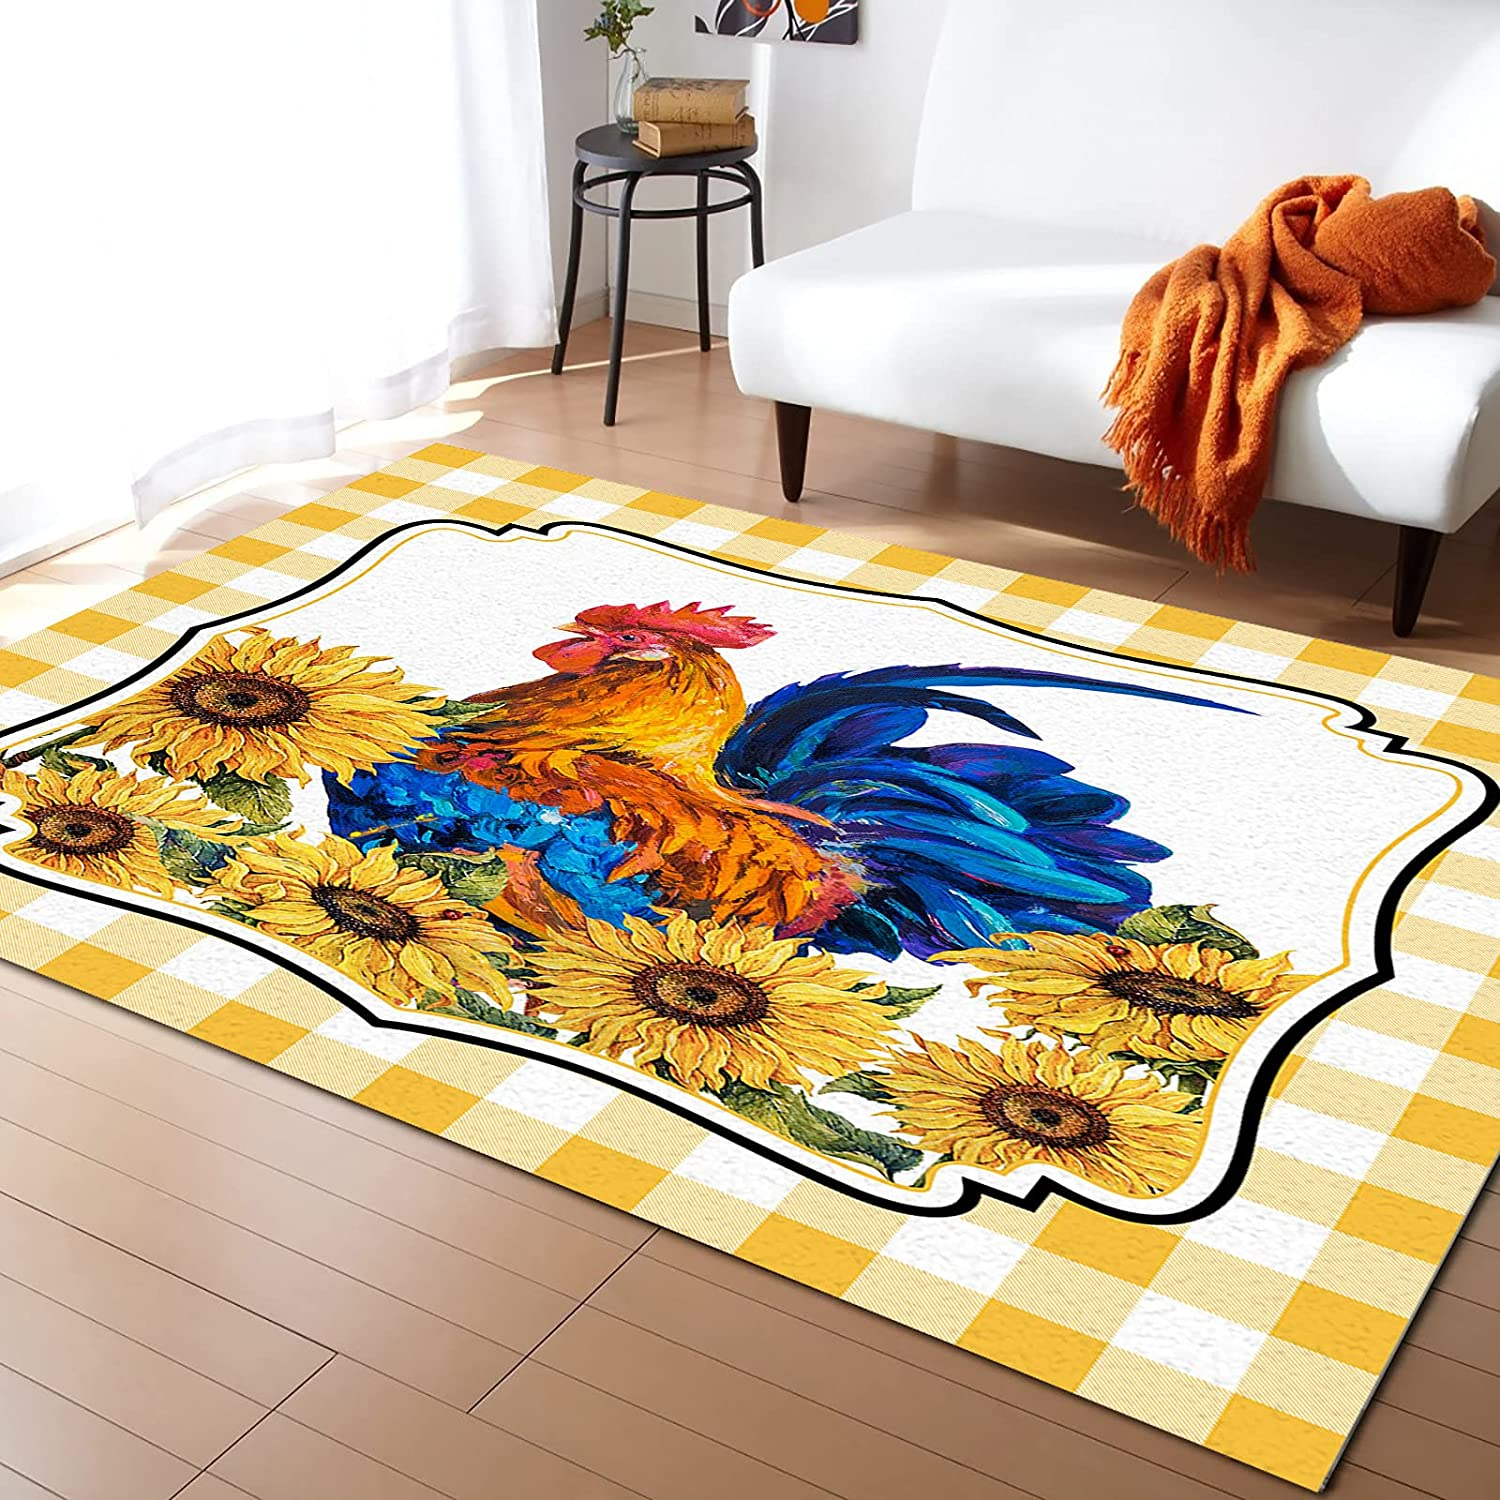 Area Rugs for Living Room Bedroom Farm Challenge the lowest price of Japan ☆ Free Shipping New with Sunflower Rooster Or